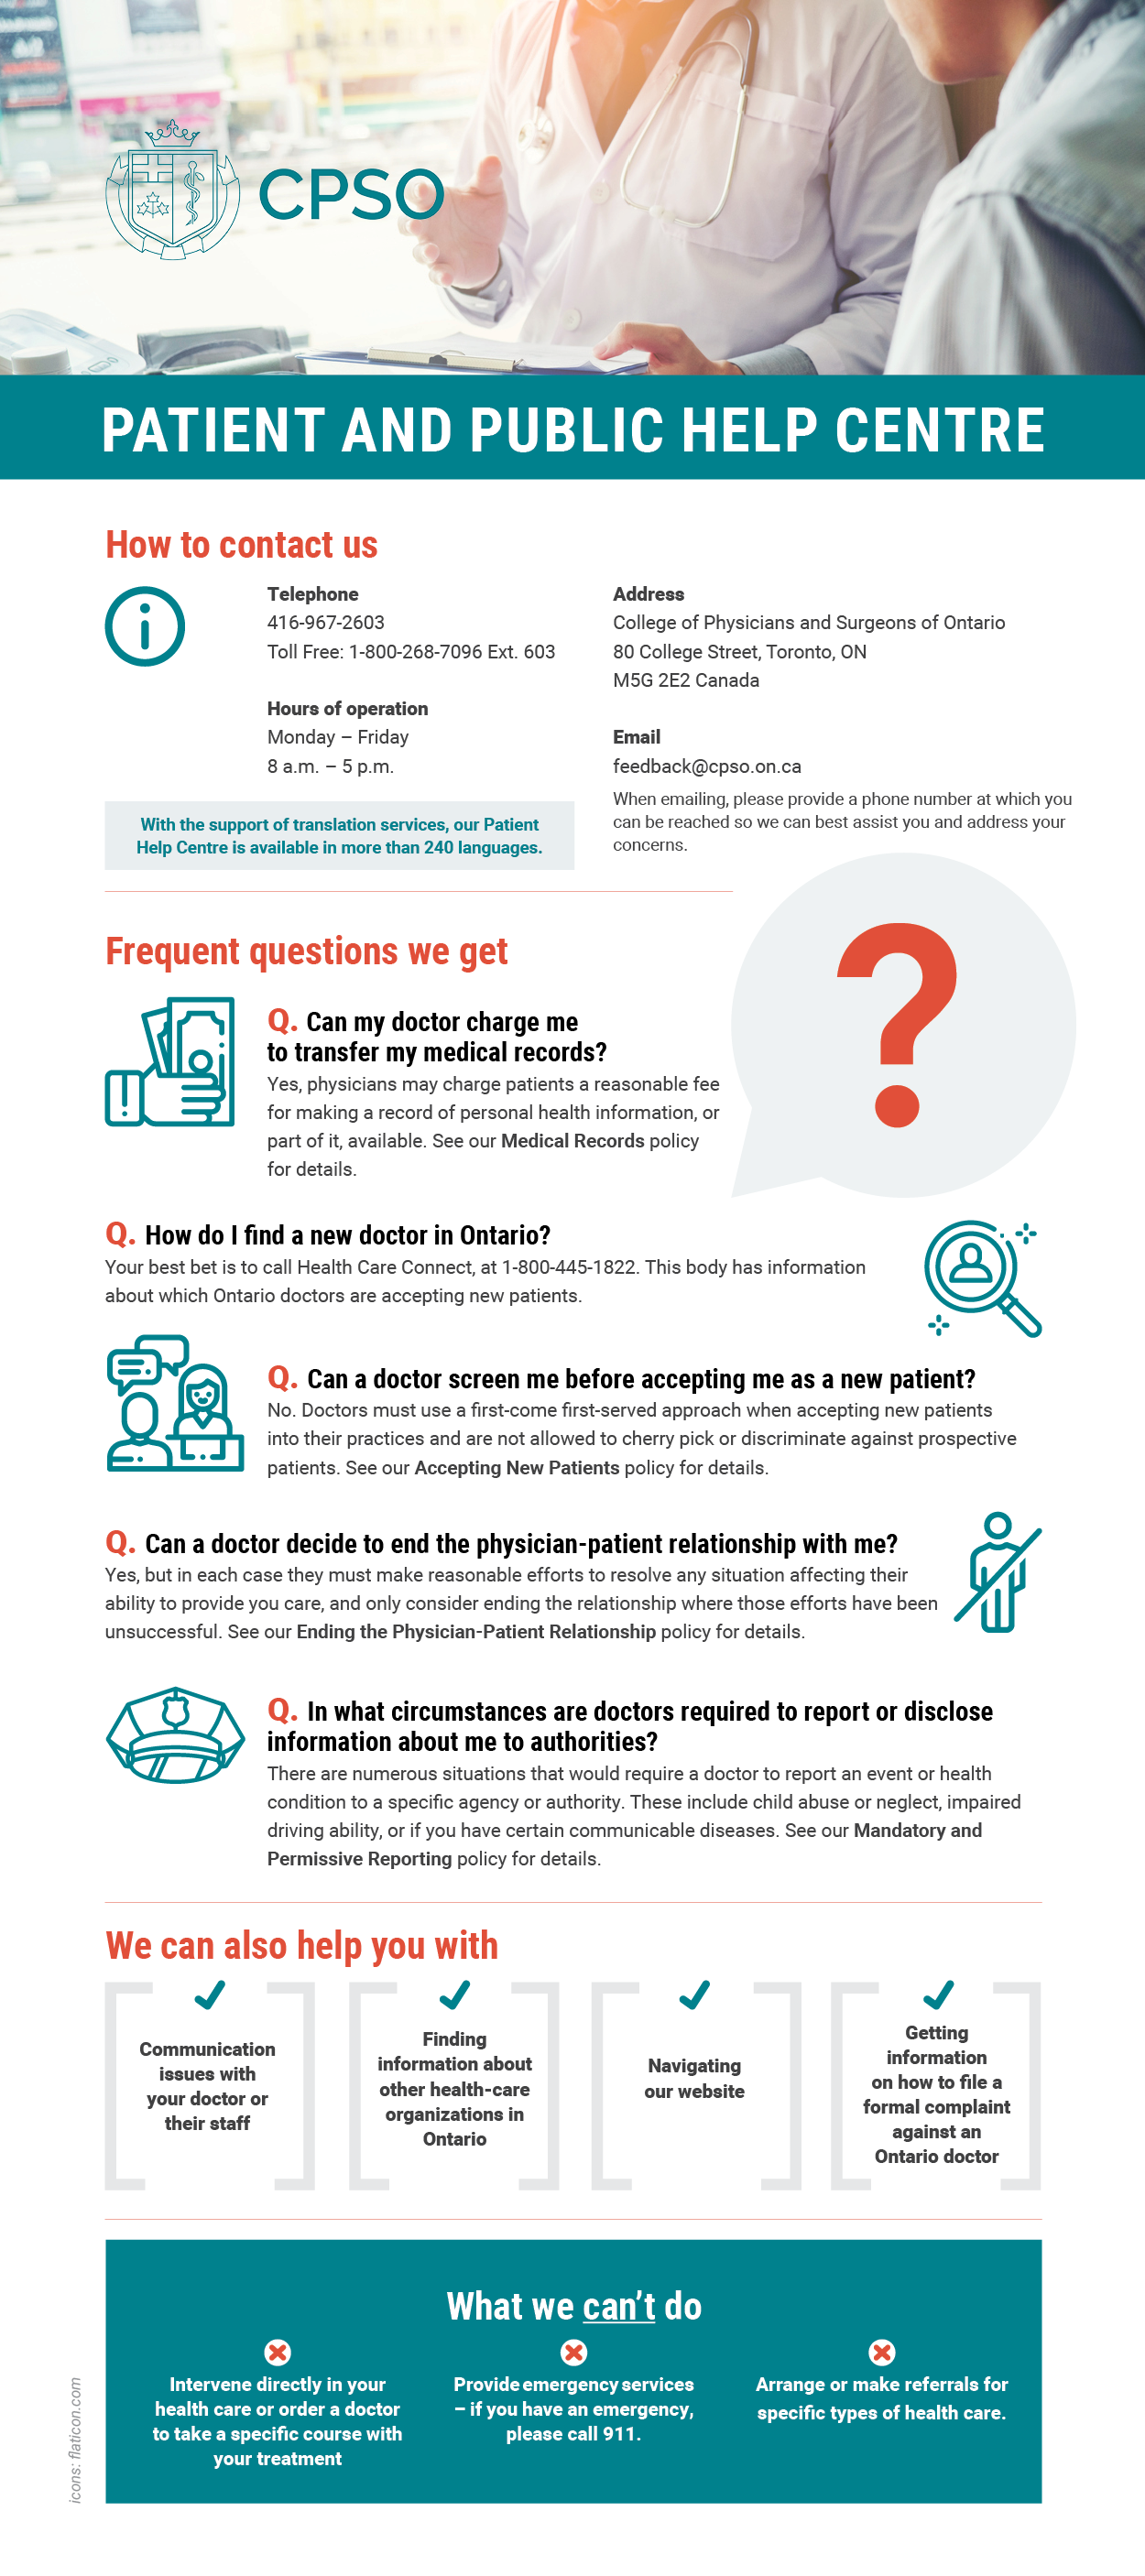 Infographic describing the Patient Help Centre and the questions they can and cannot answer